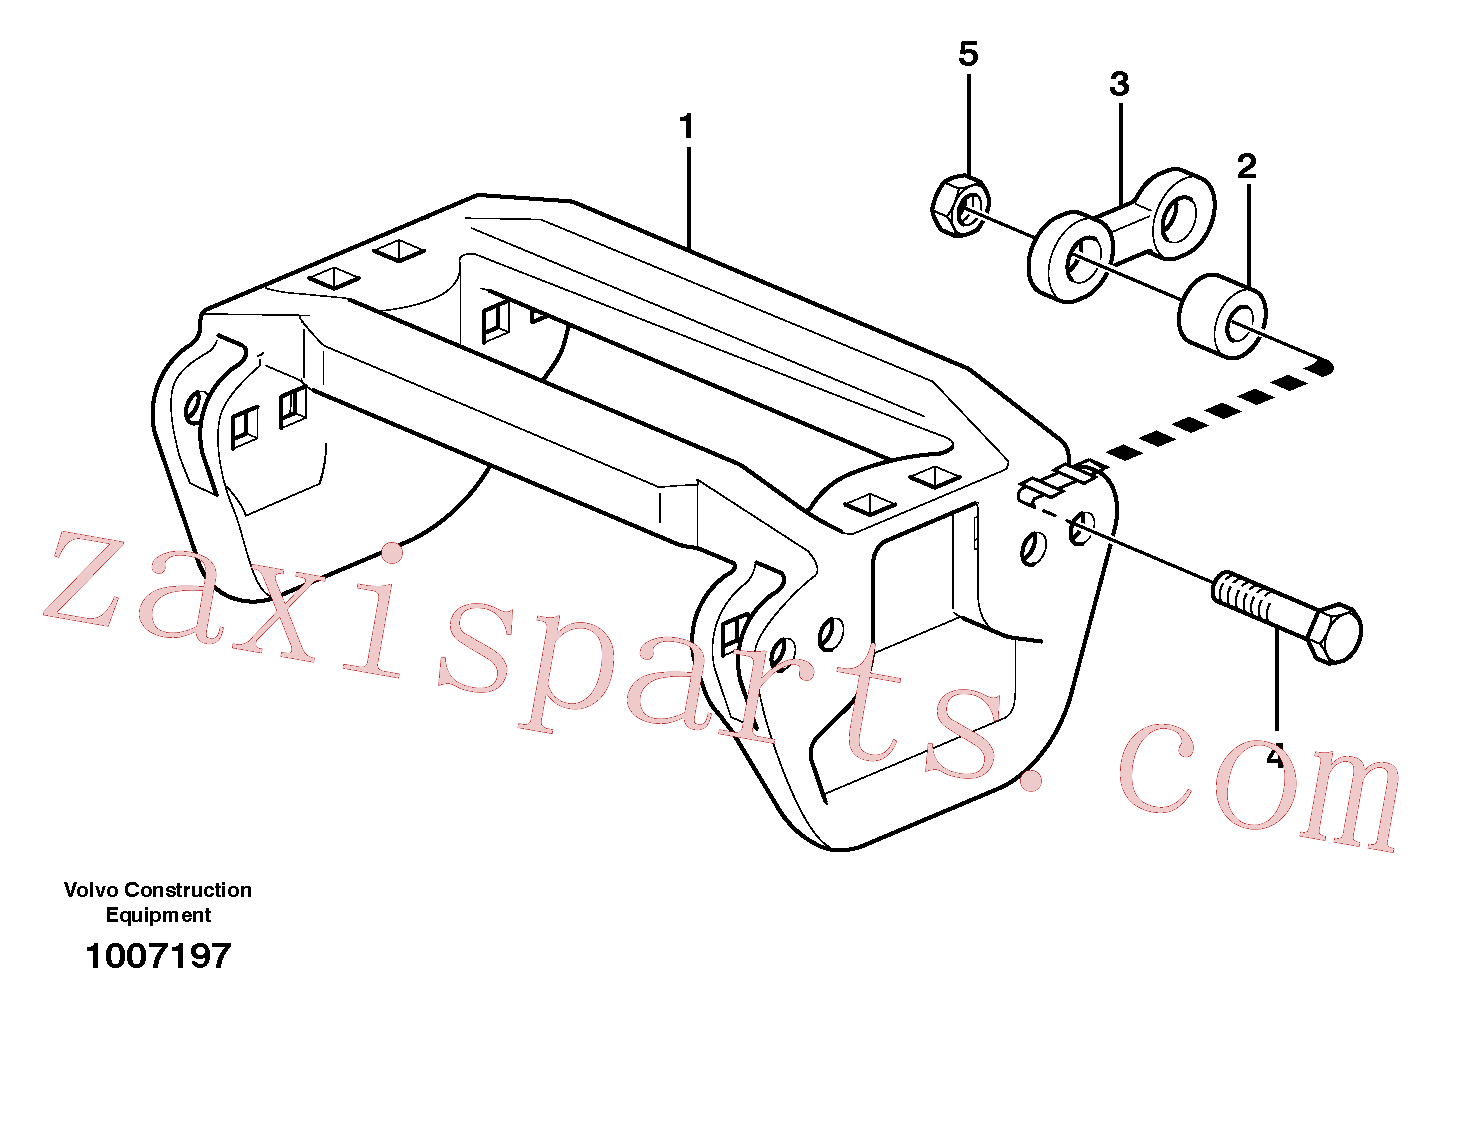 VOE11703152 for Volvo Track equipment(1007197 assembly)